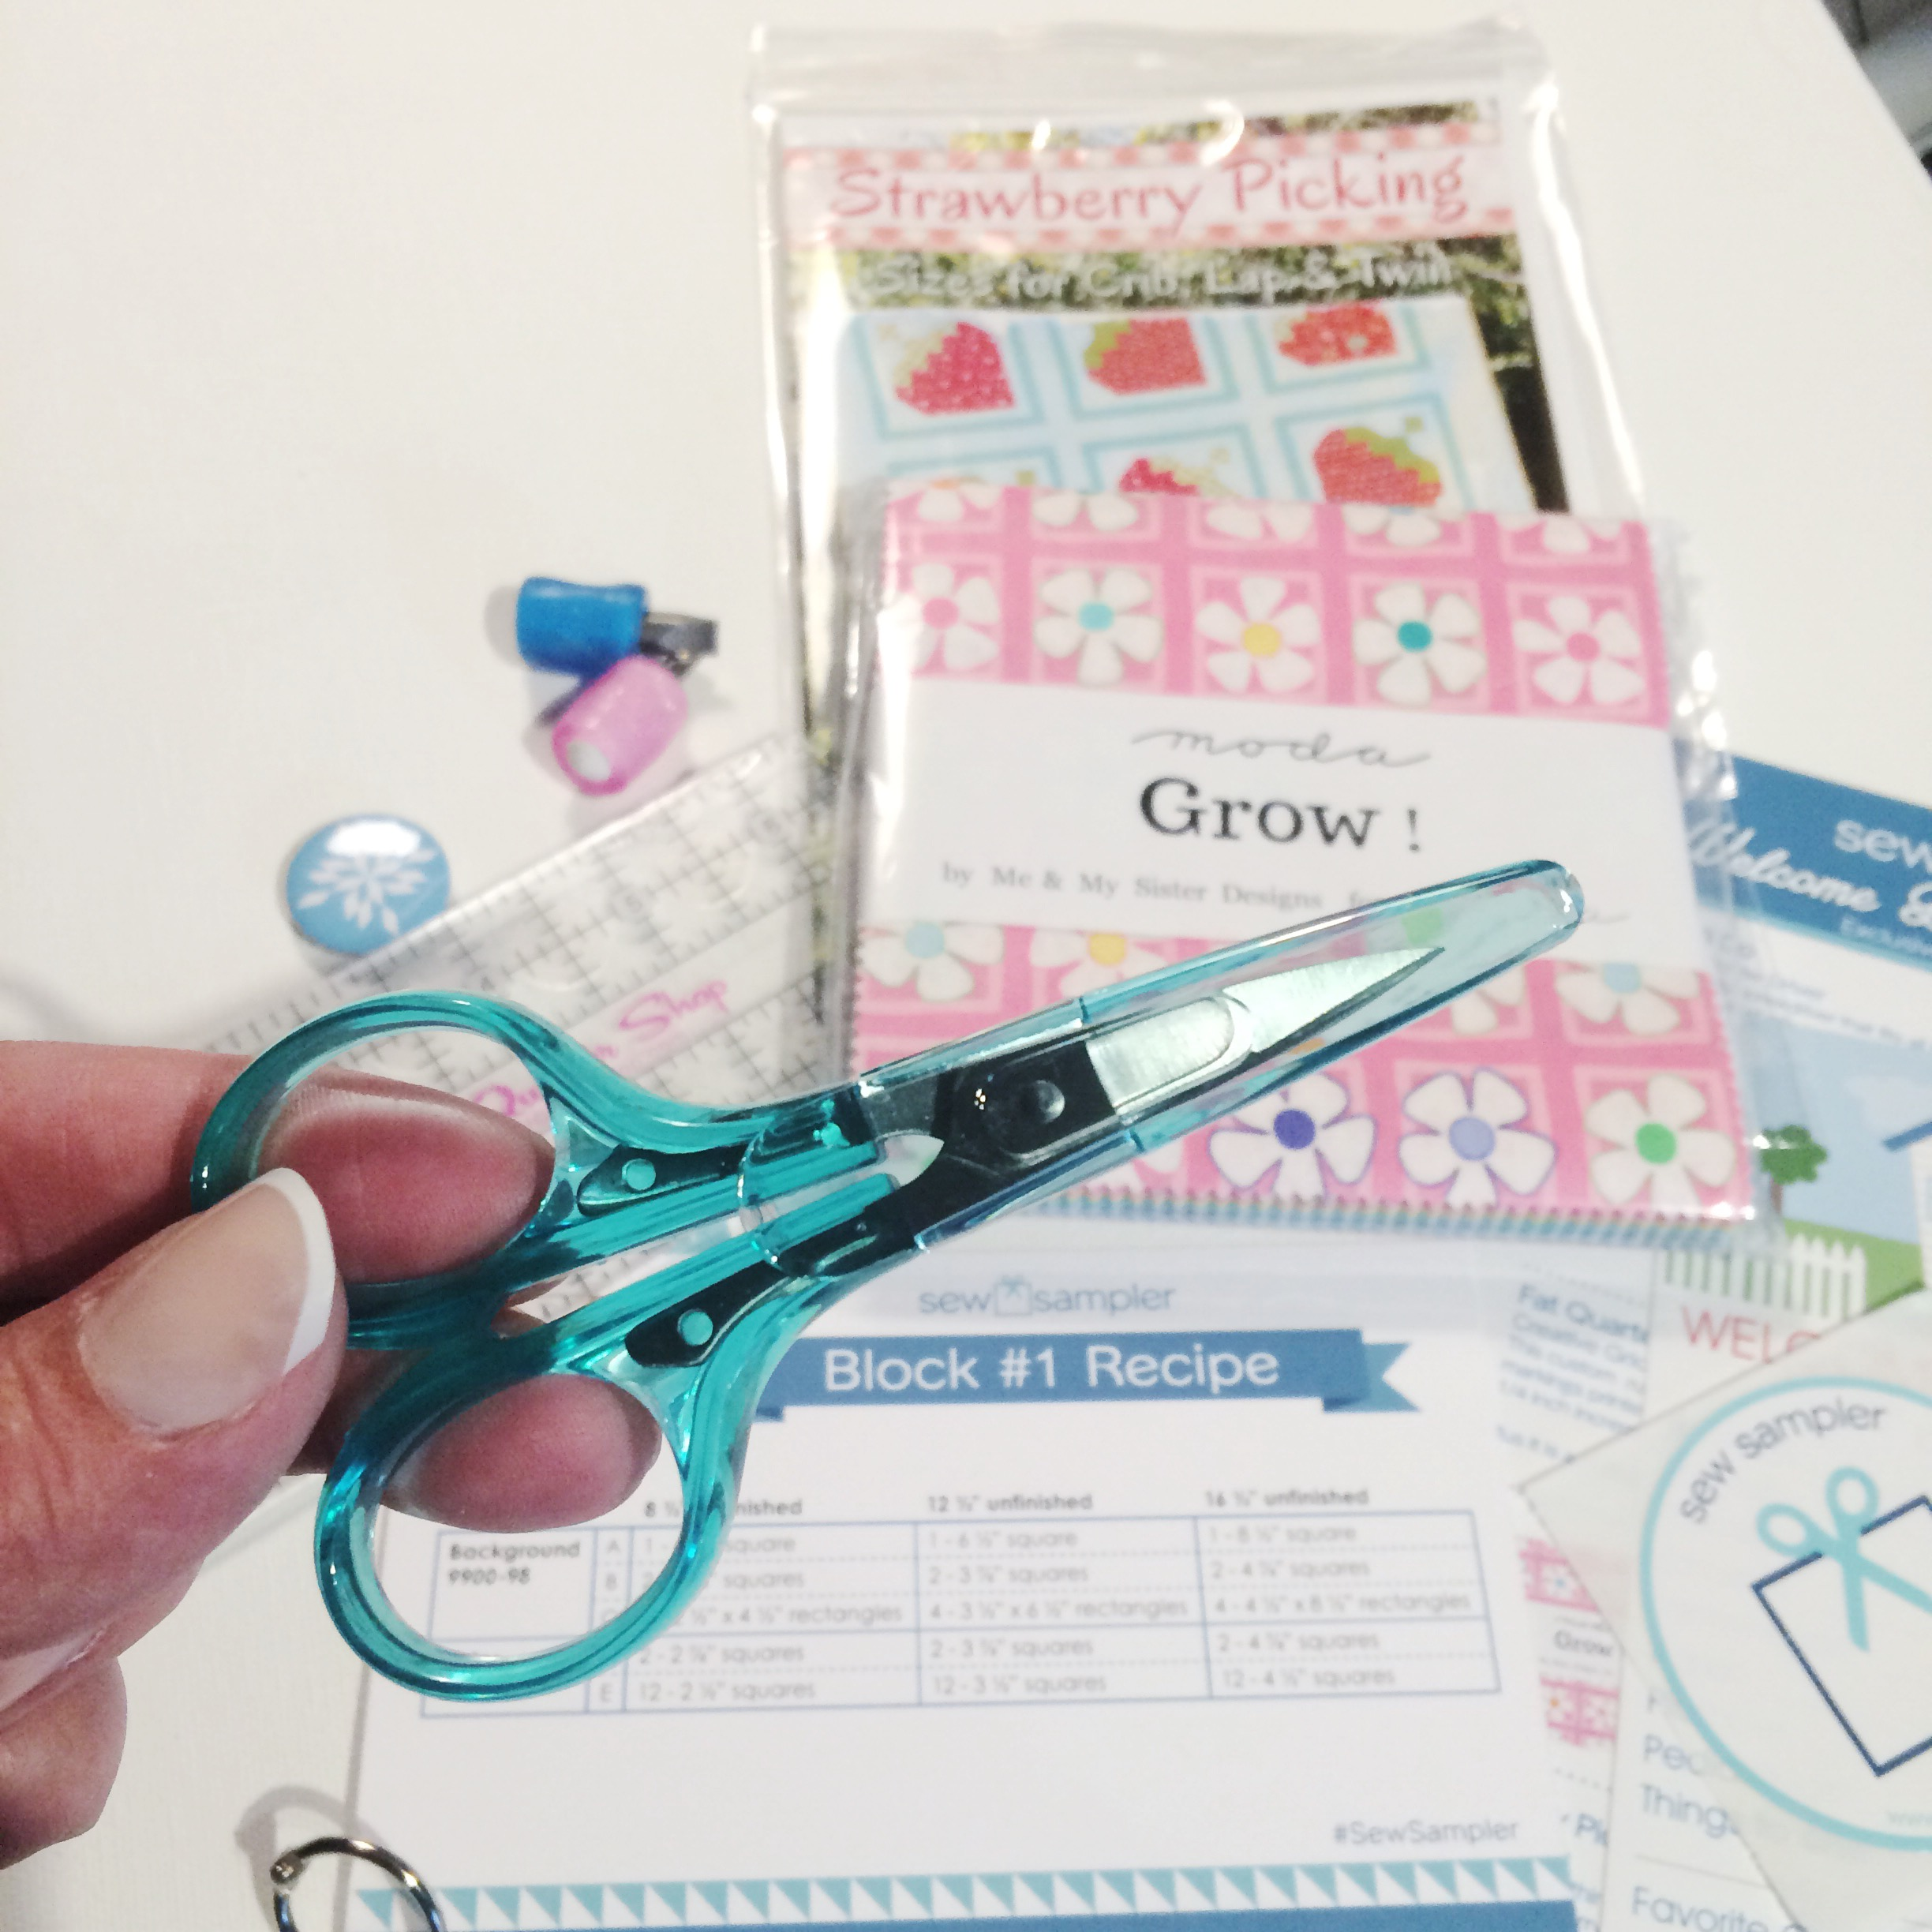 Sew Sampler: New Subscription Box